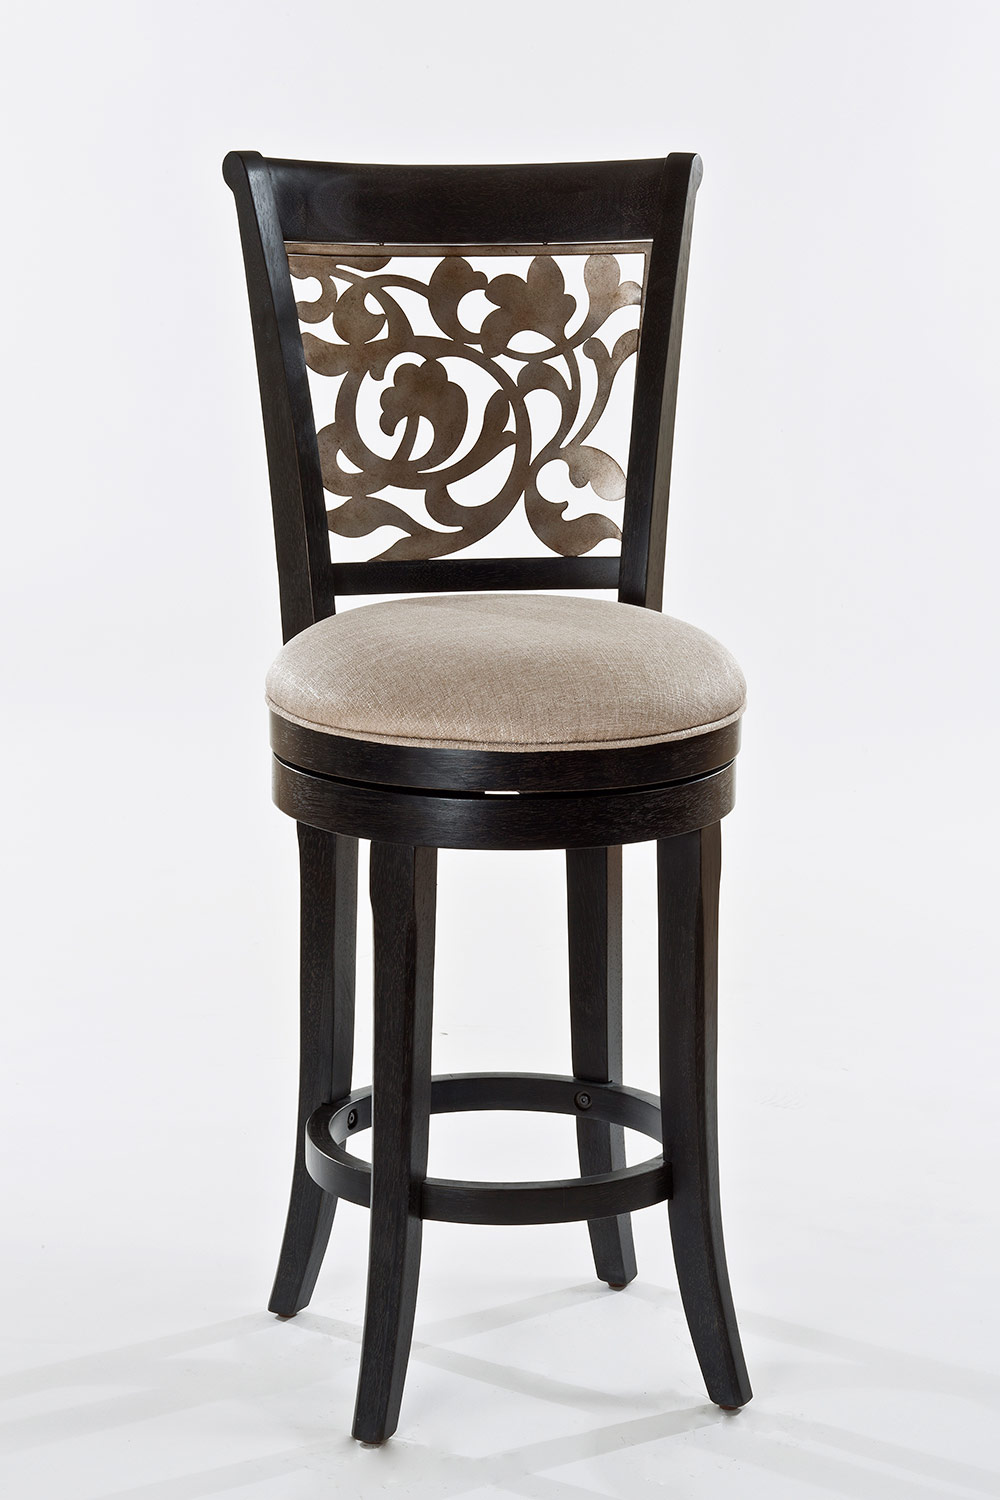 Hillsdale Bennington Swivel Bar Stool - Black Distressed Gray - Putty Fabric